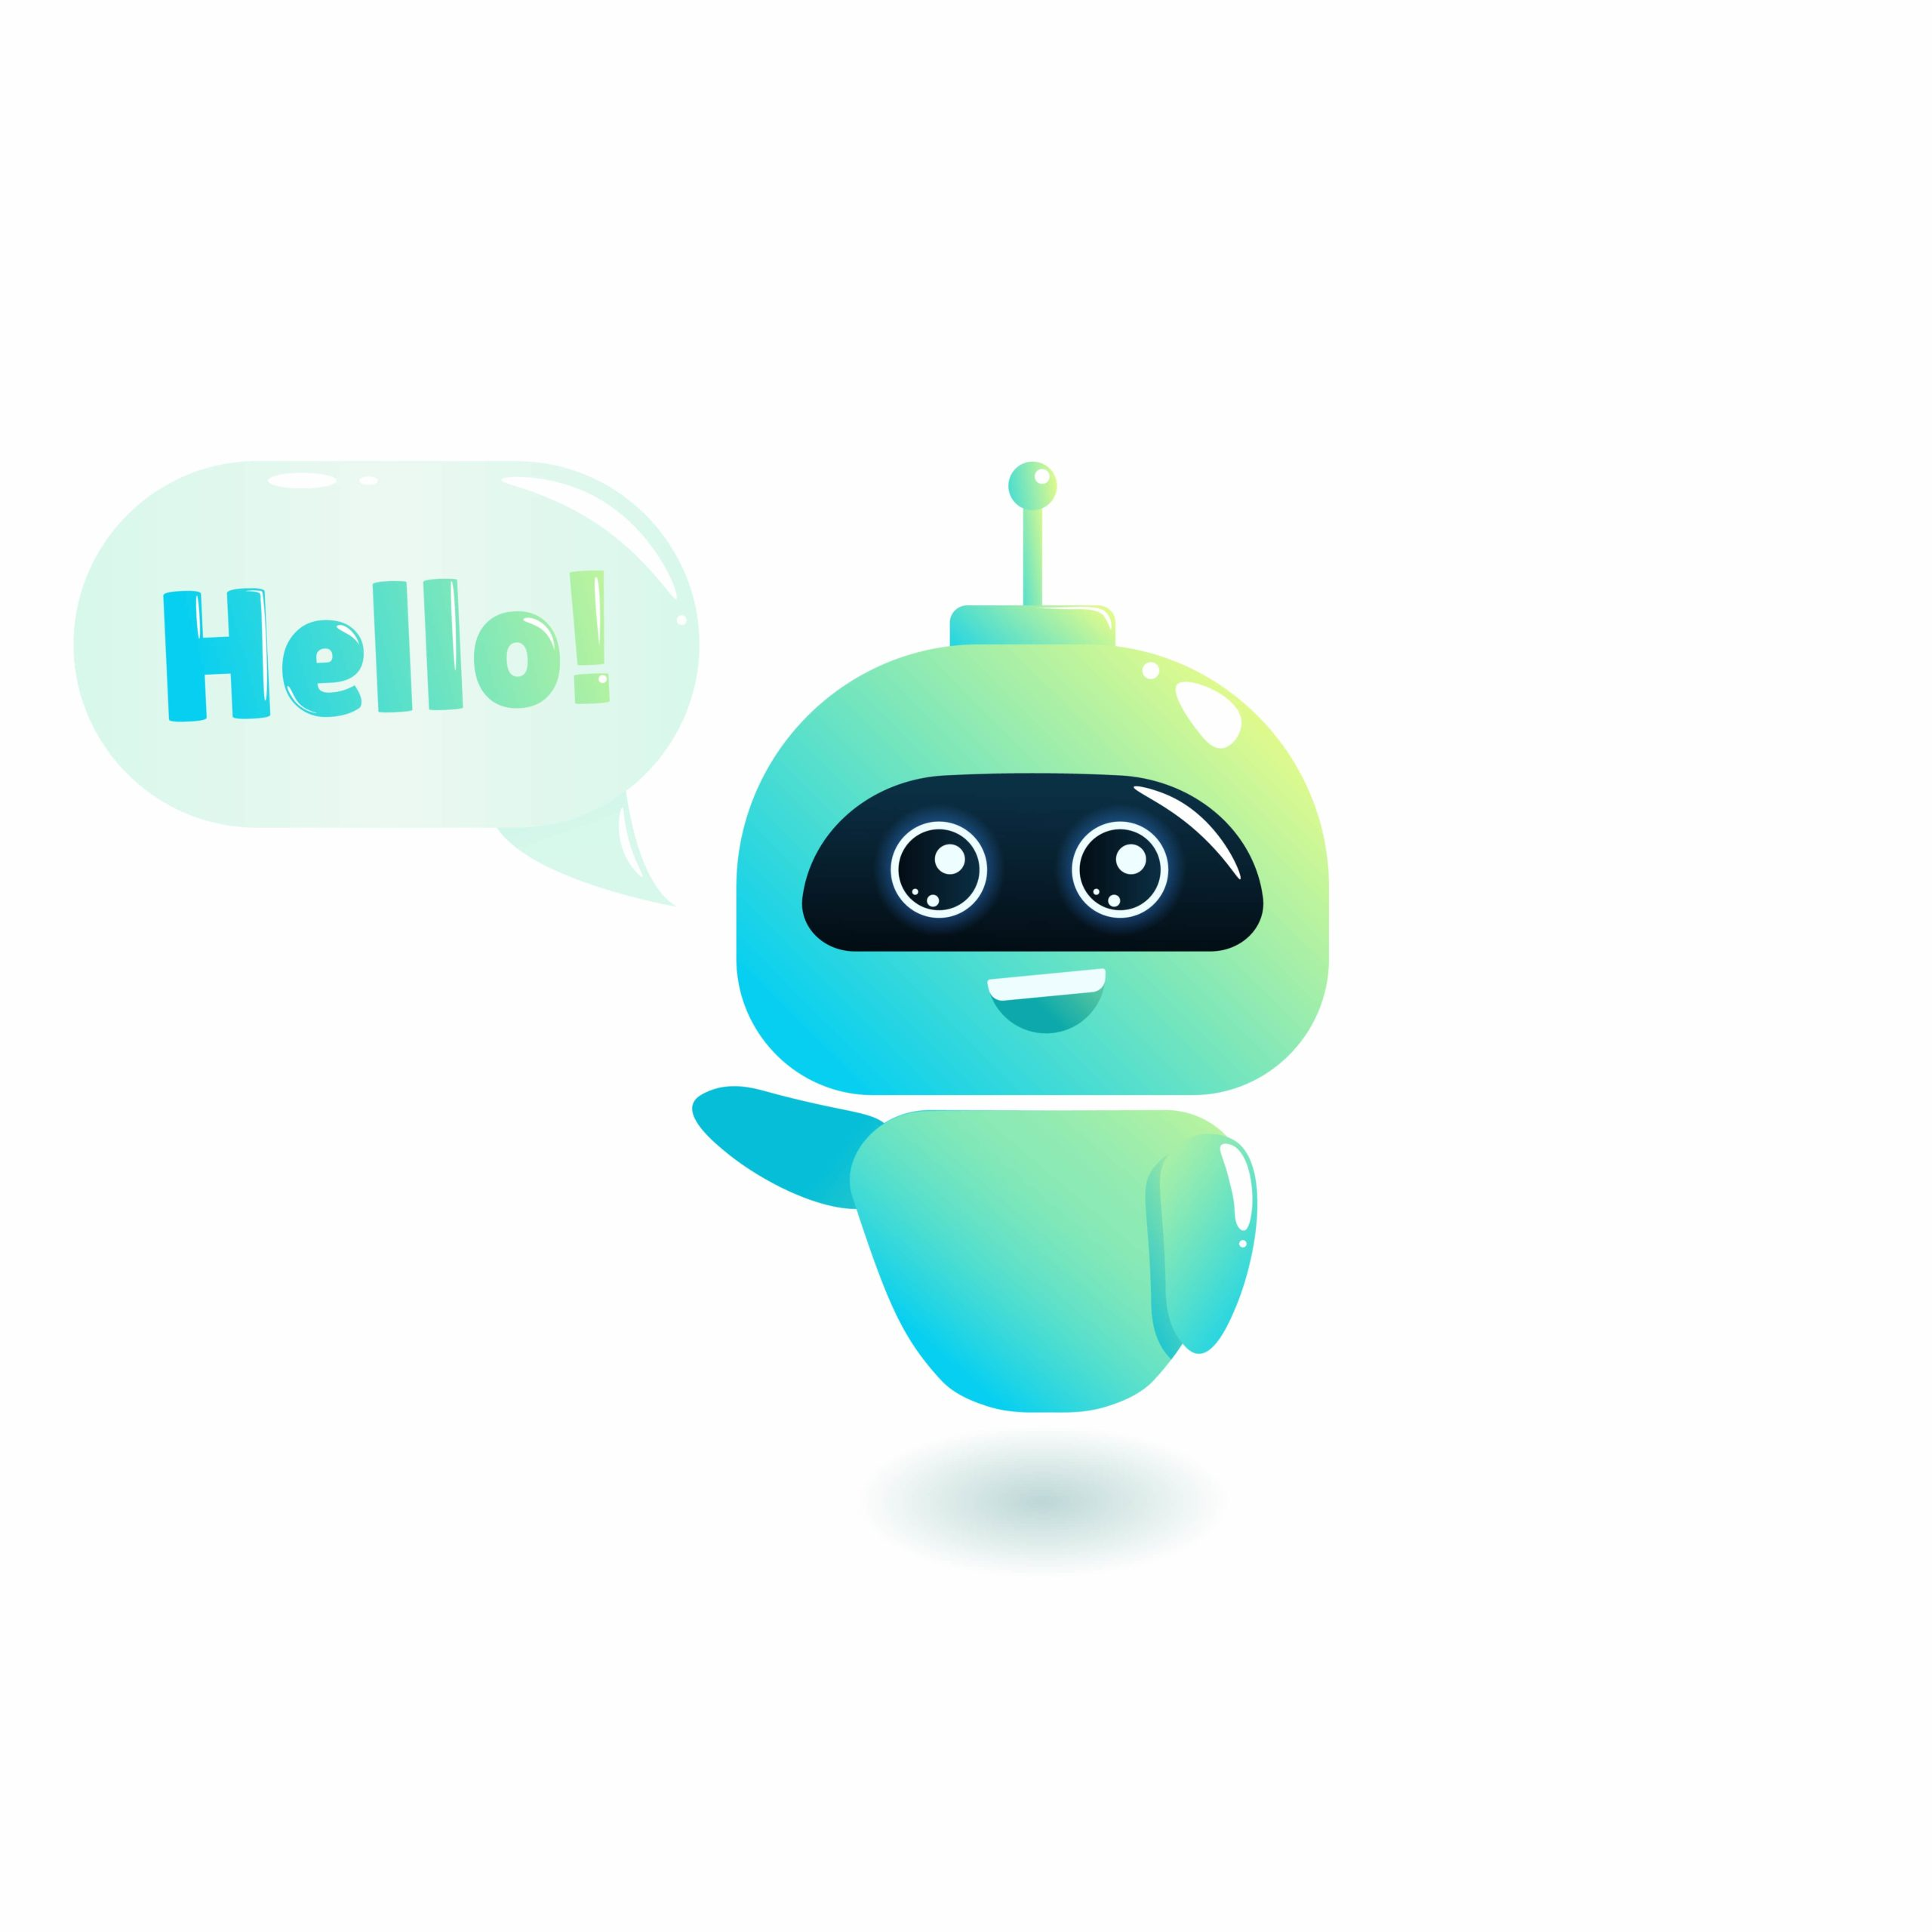 app idea - chats with chatbot app